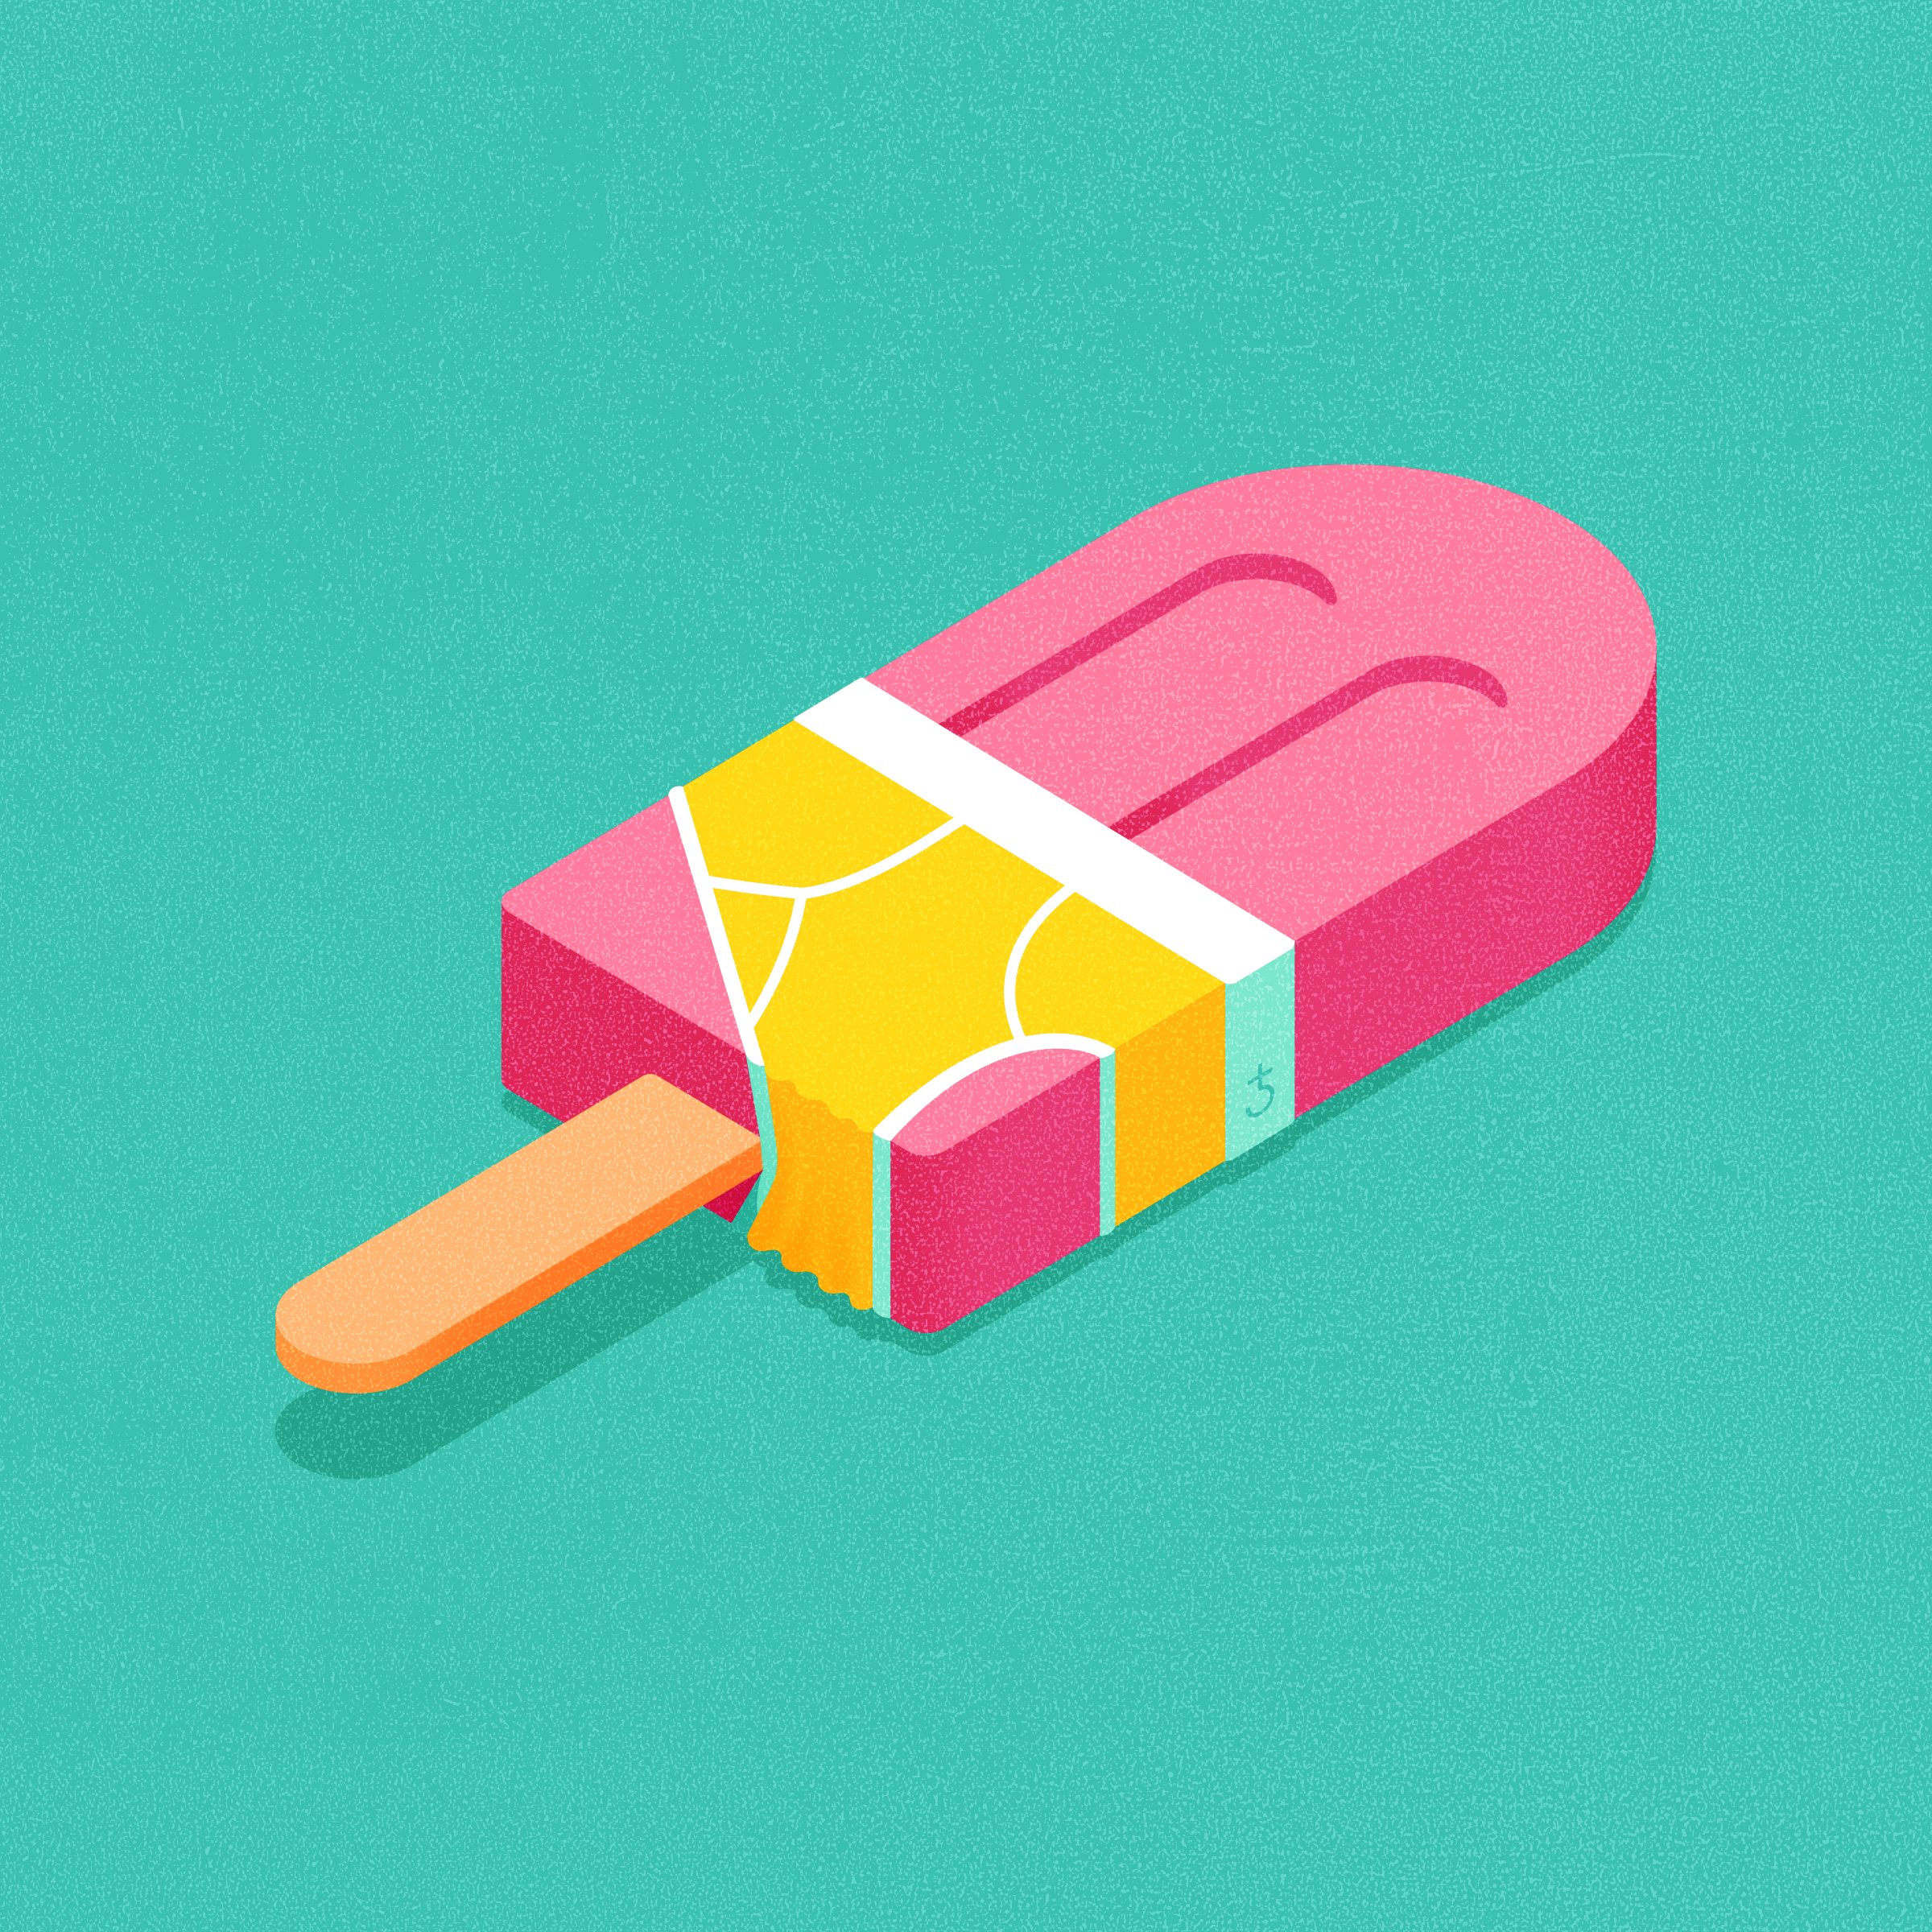 illustration_andre_levy_zhion_vector_isometric_perspective_editorial_summer_erotic_playful_flat_retro_underpants_icepop.PNG